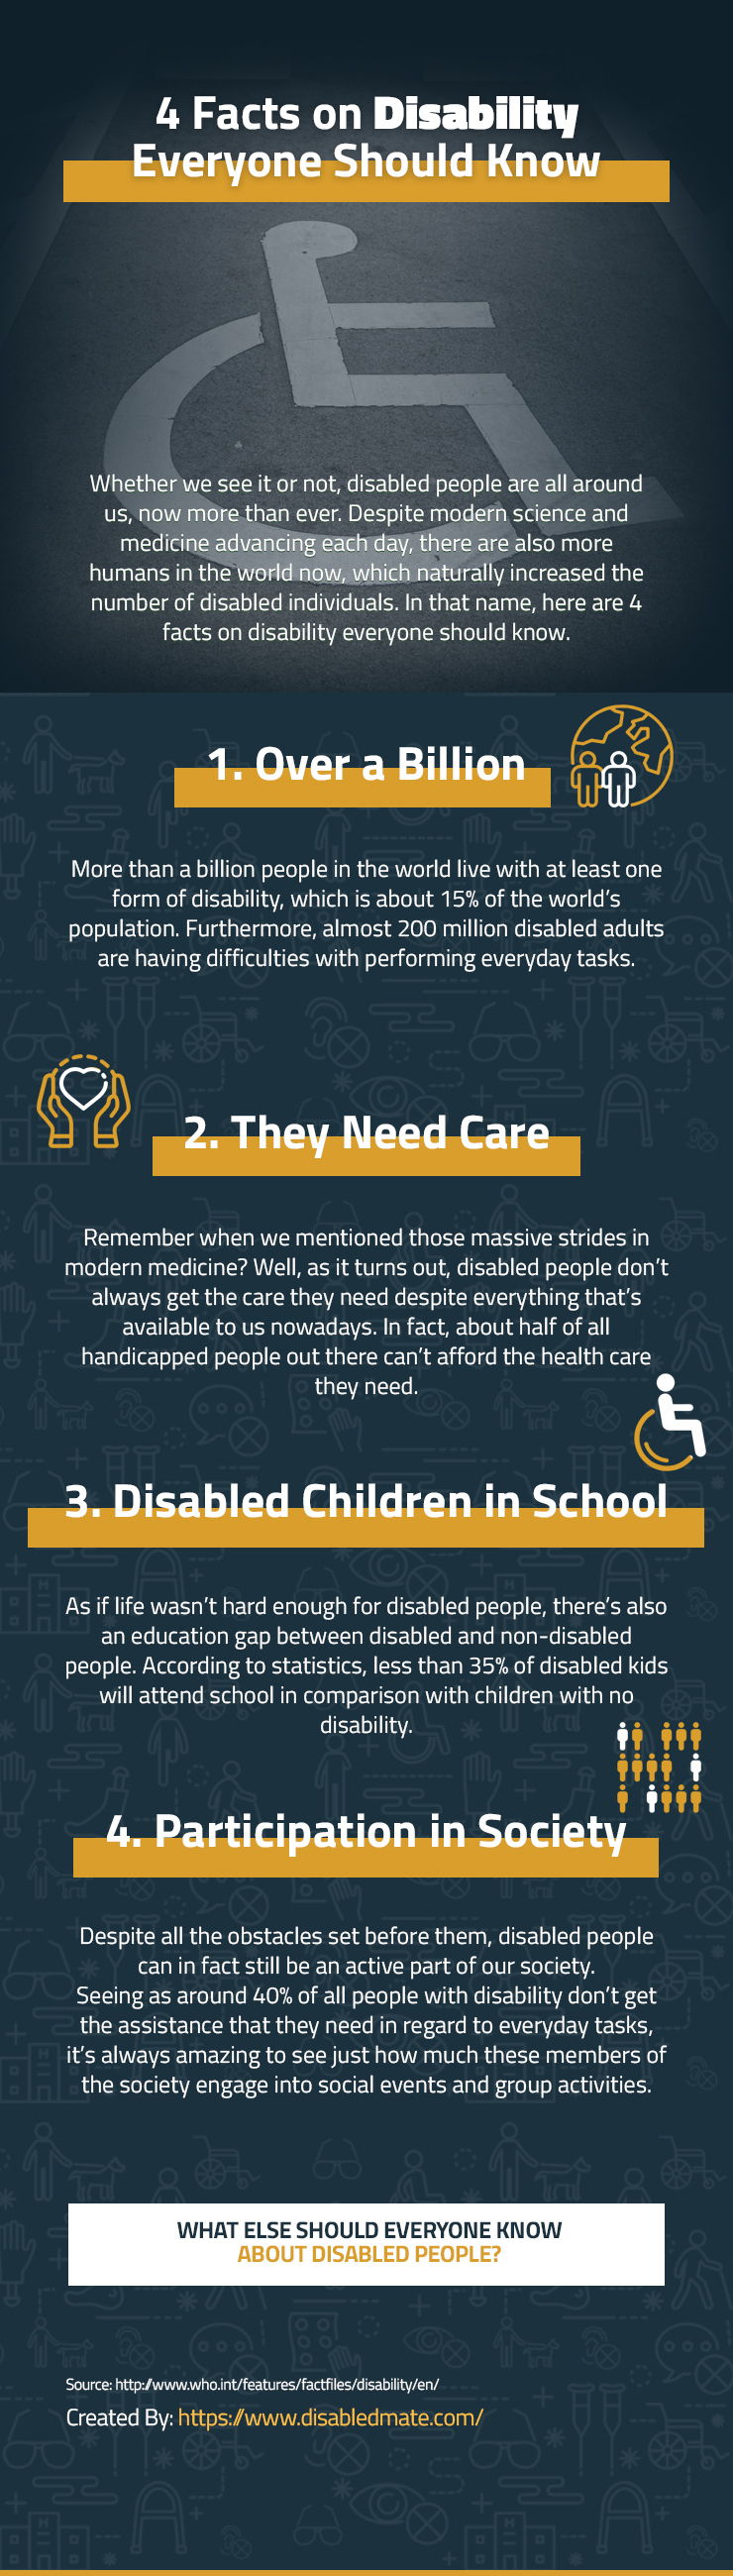 4 Facts on Disability Everyone Should Know